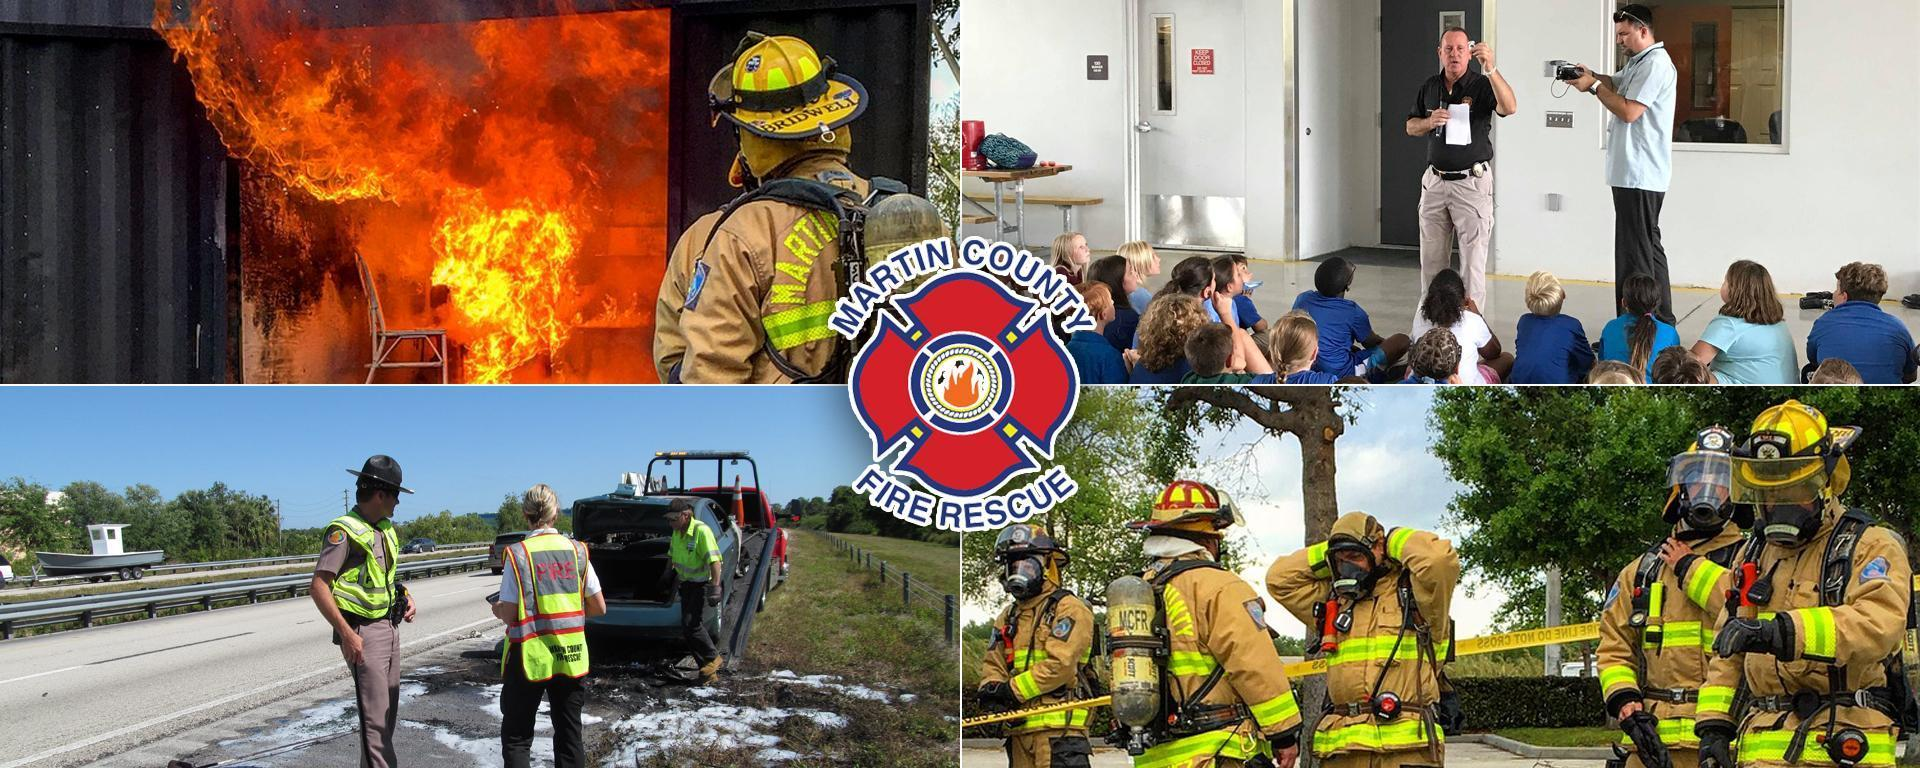 Collage of images depicting fire prevention duties